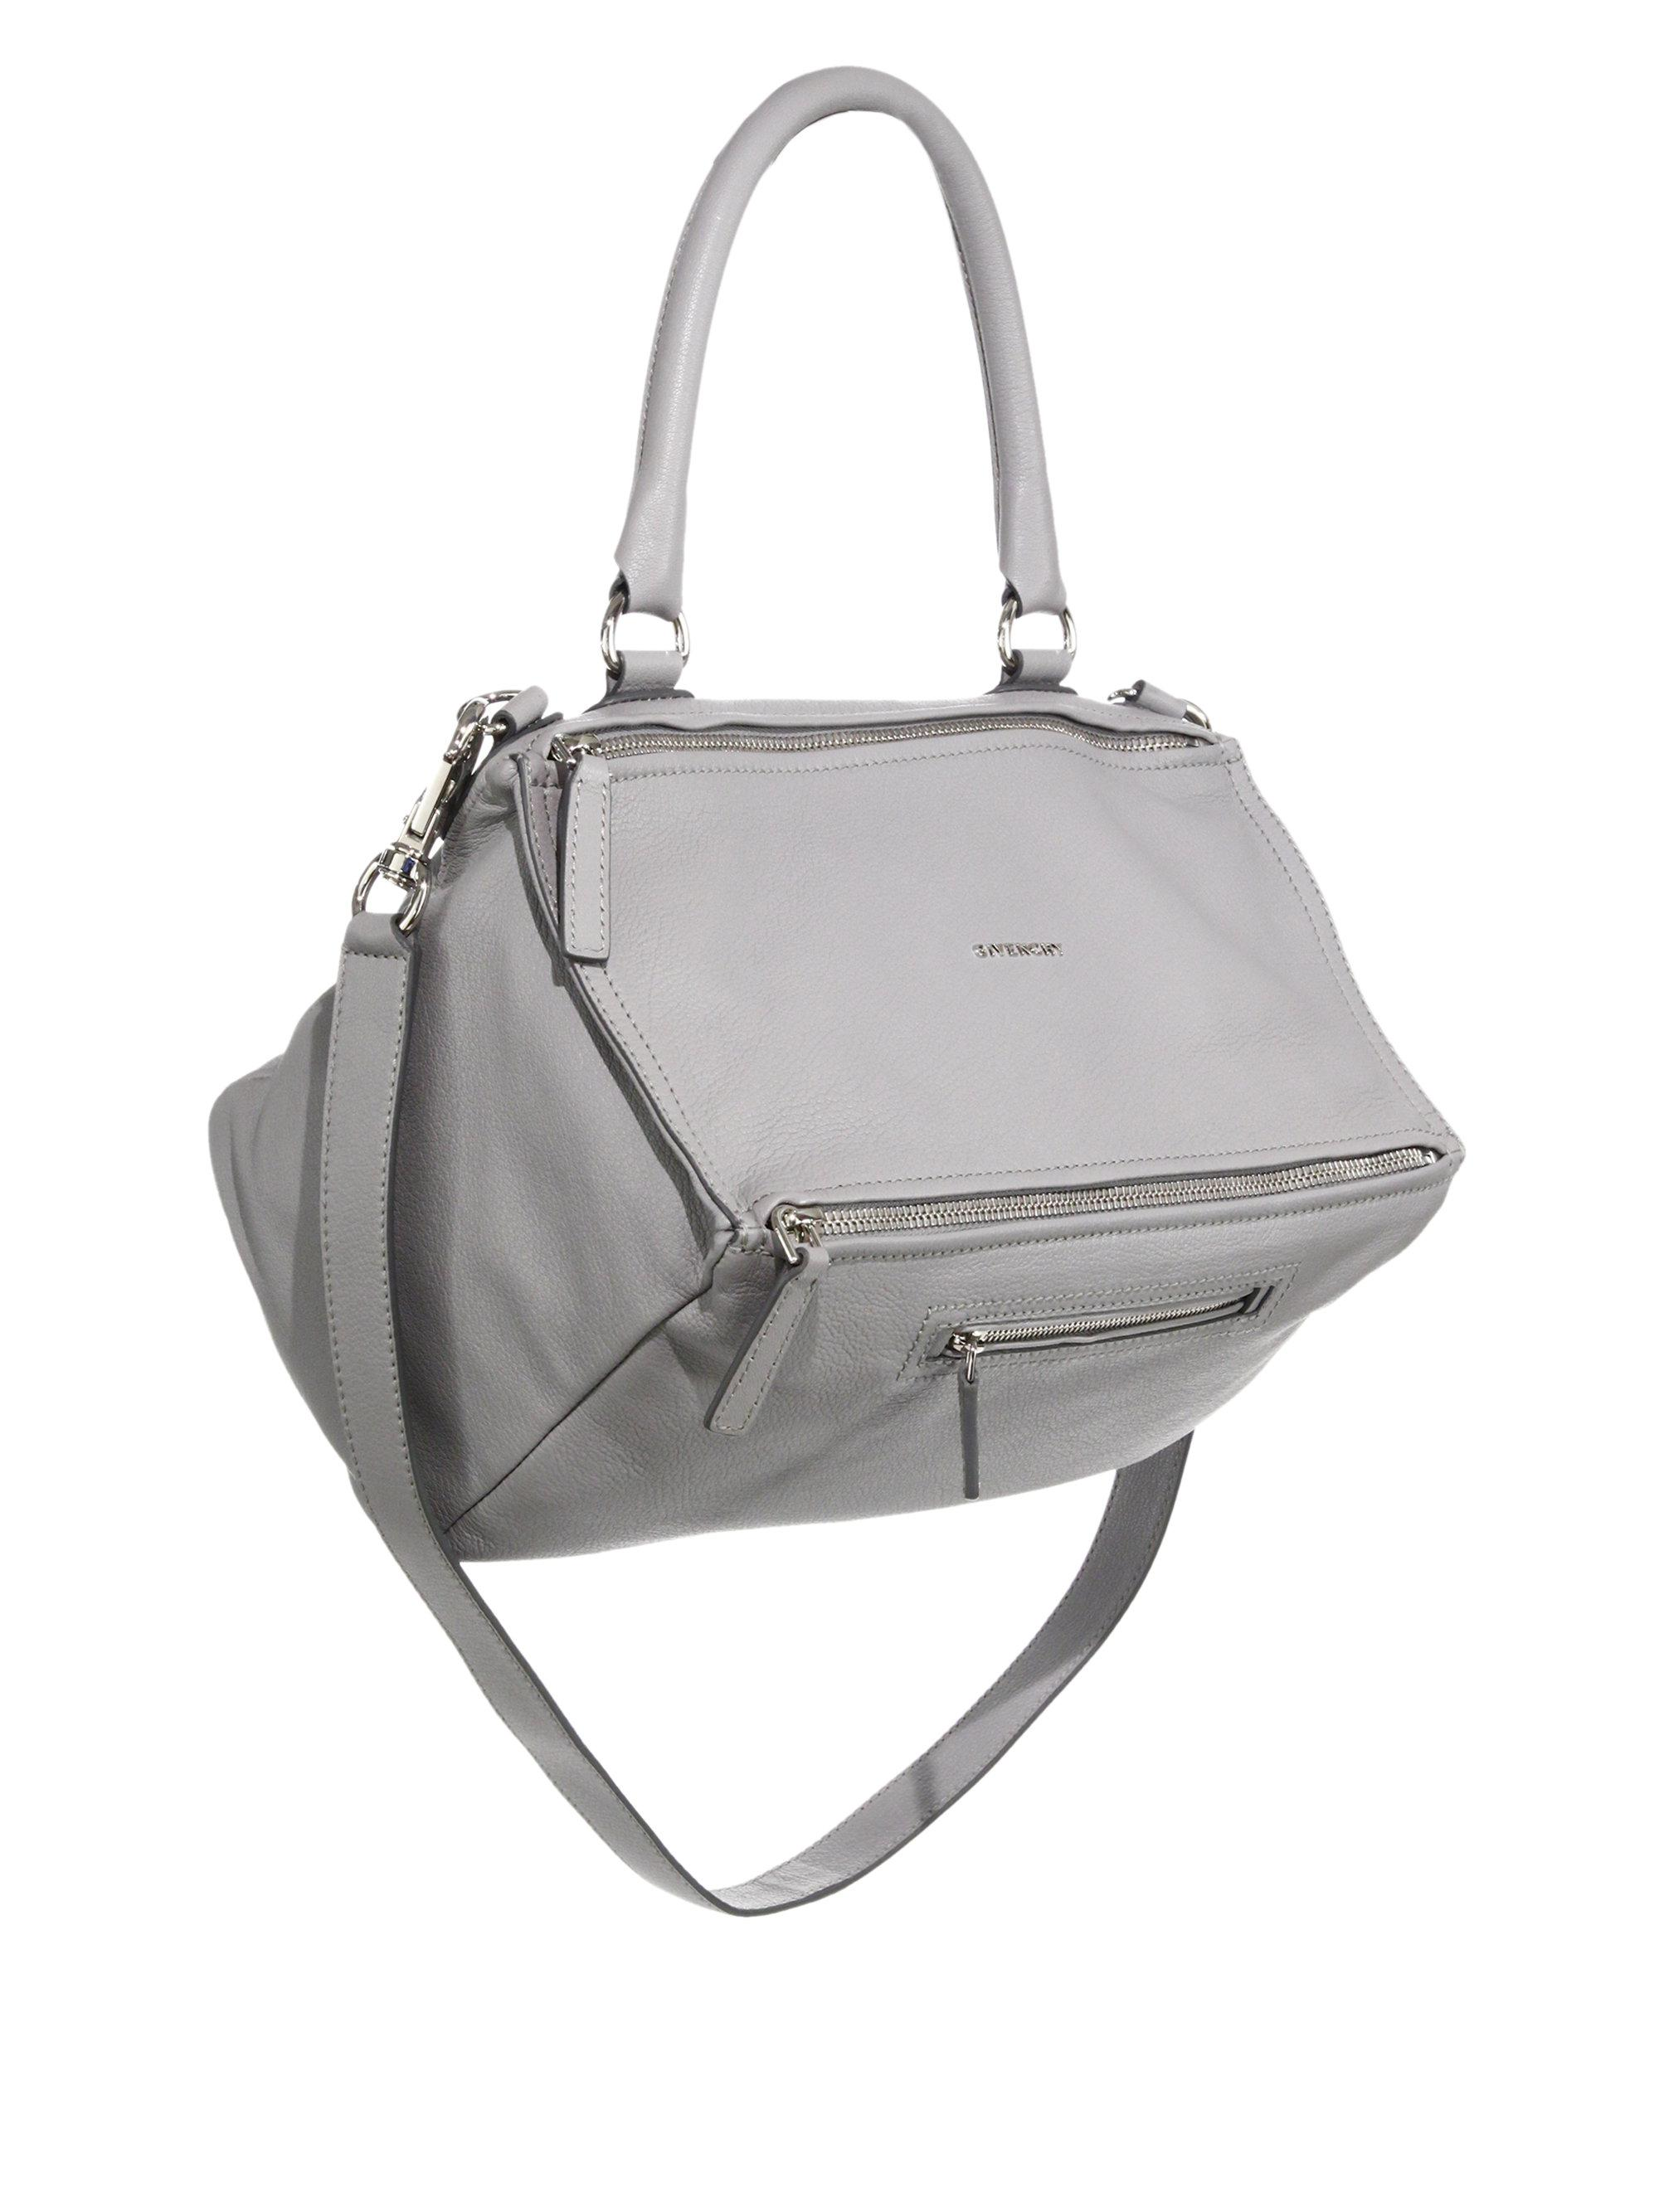 55e19f4c1761 Lyst - Givenchy Pandora Medium Leather Shoulder Bag in White